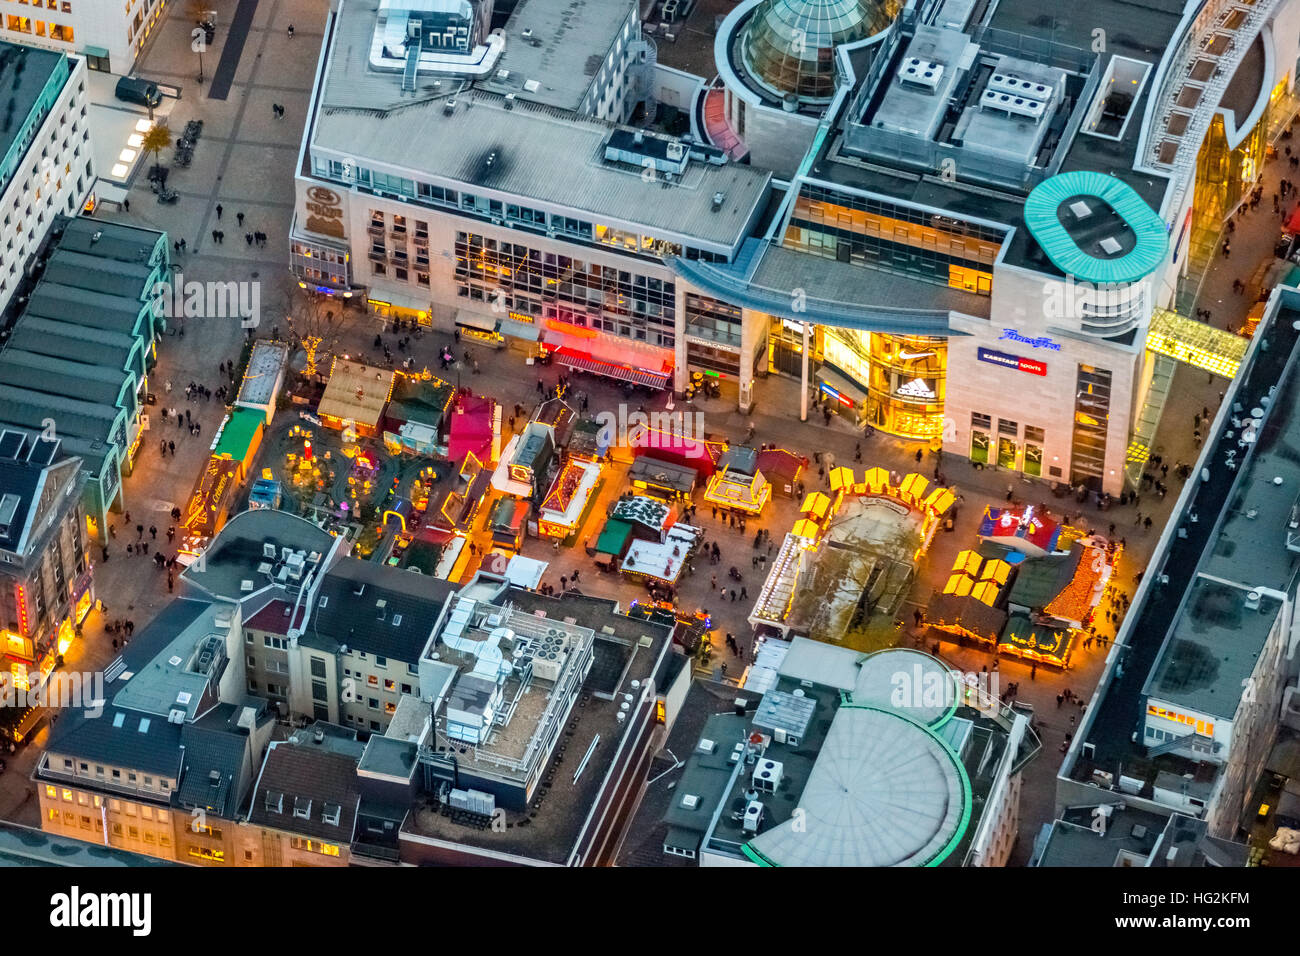 Aerial view, Christmas market and event stage at the Old Market, Dortmund, Ruhr aeria, north rhine-westphalia, Germany, - Stock Image